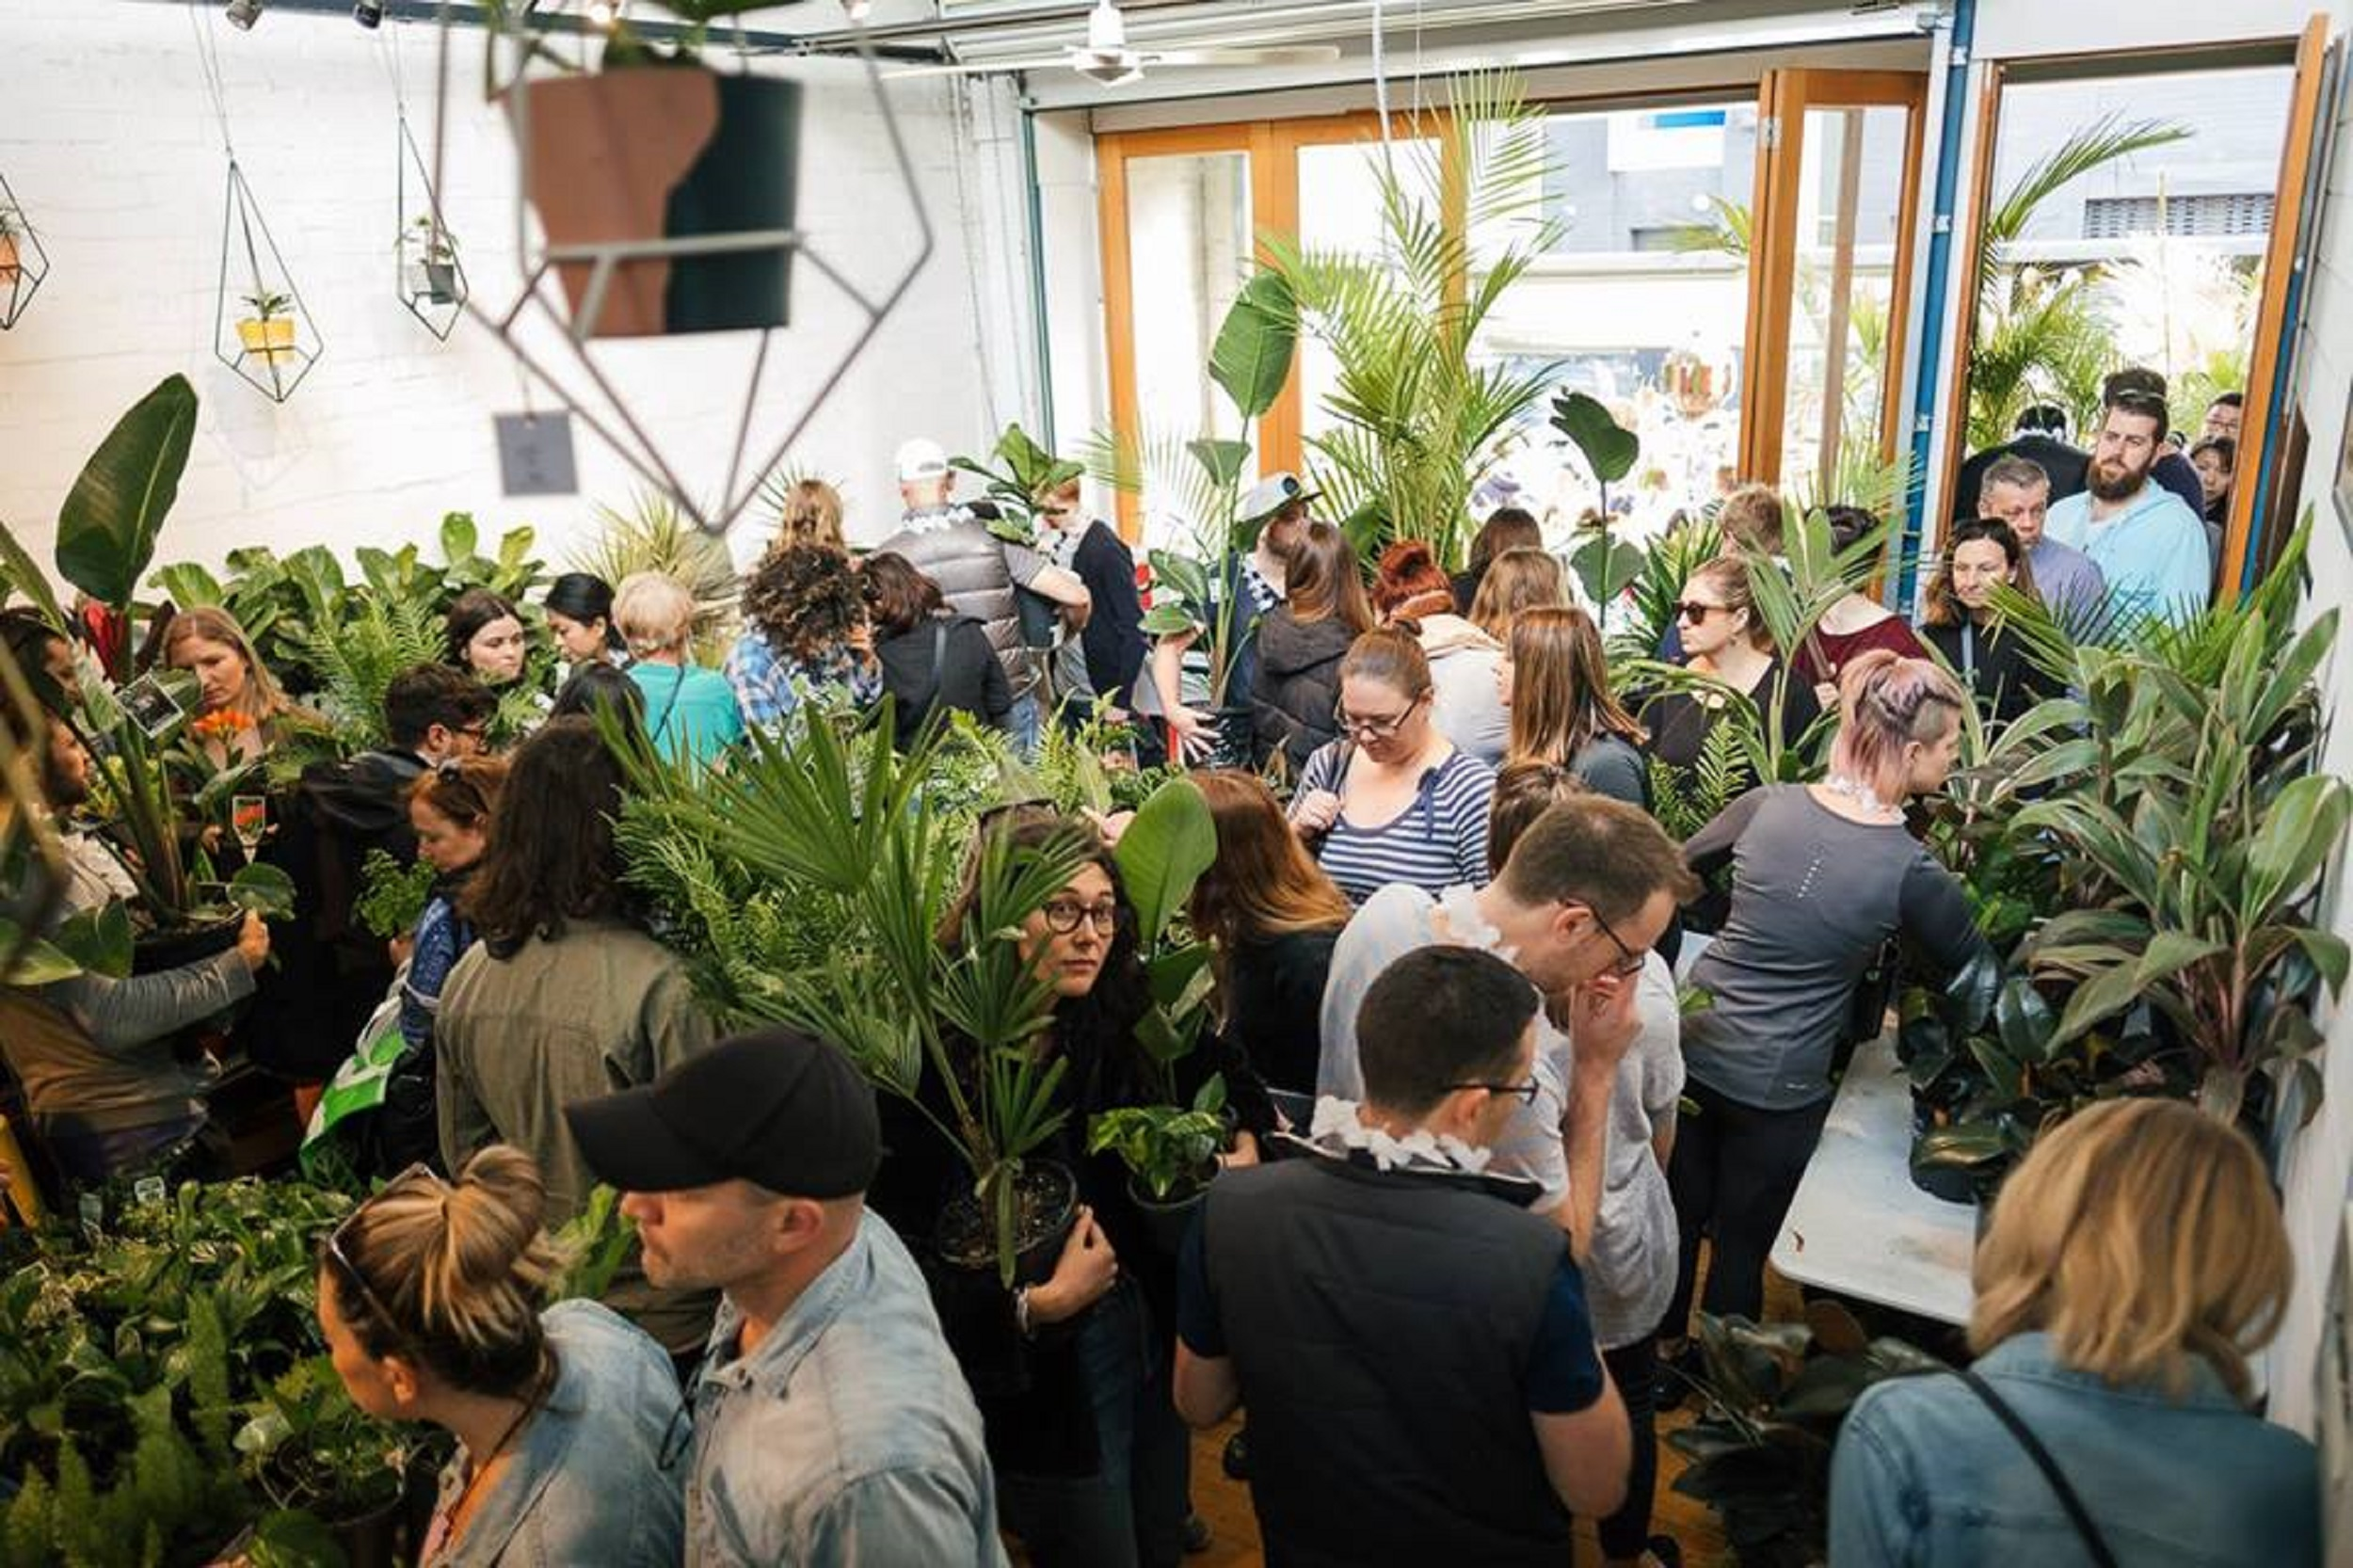 Huge Indoor Plant Warehouse Sale - Rare Plant Party - Melbourne, Melbourne, Victoria, Australia